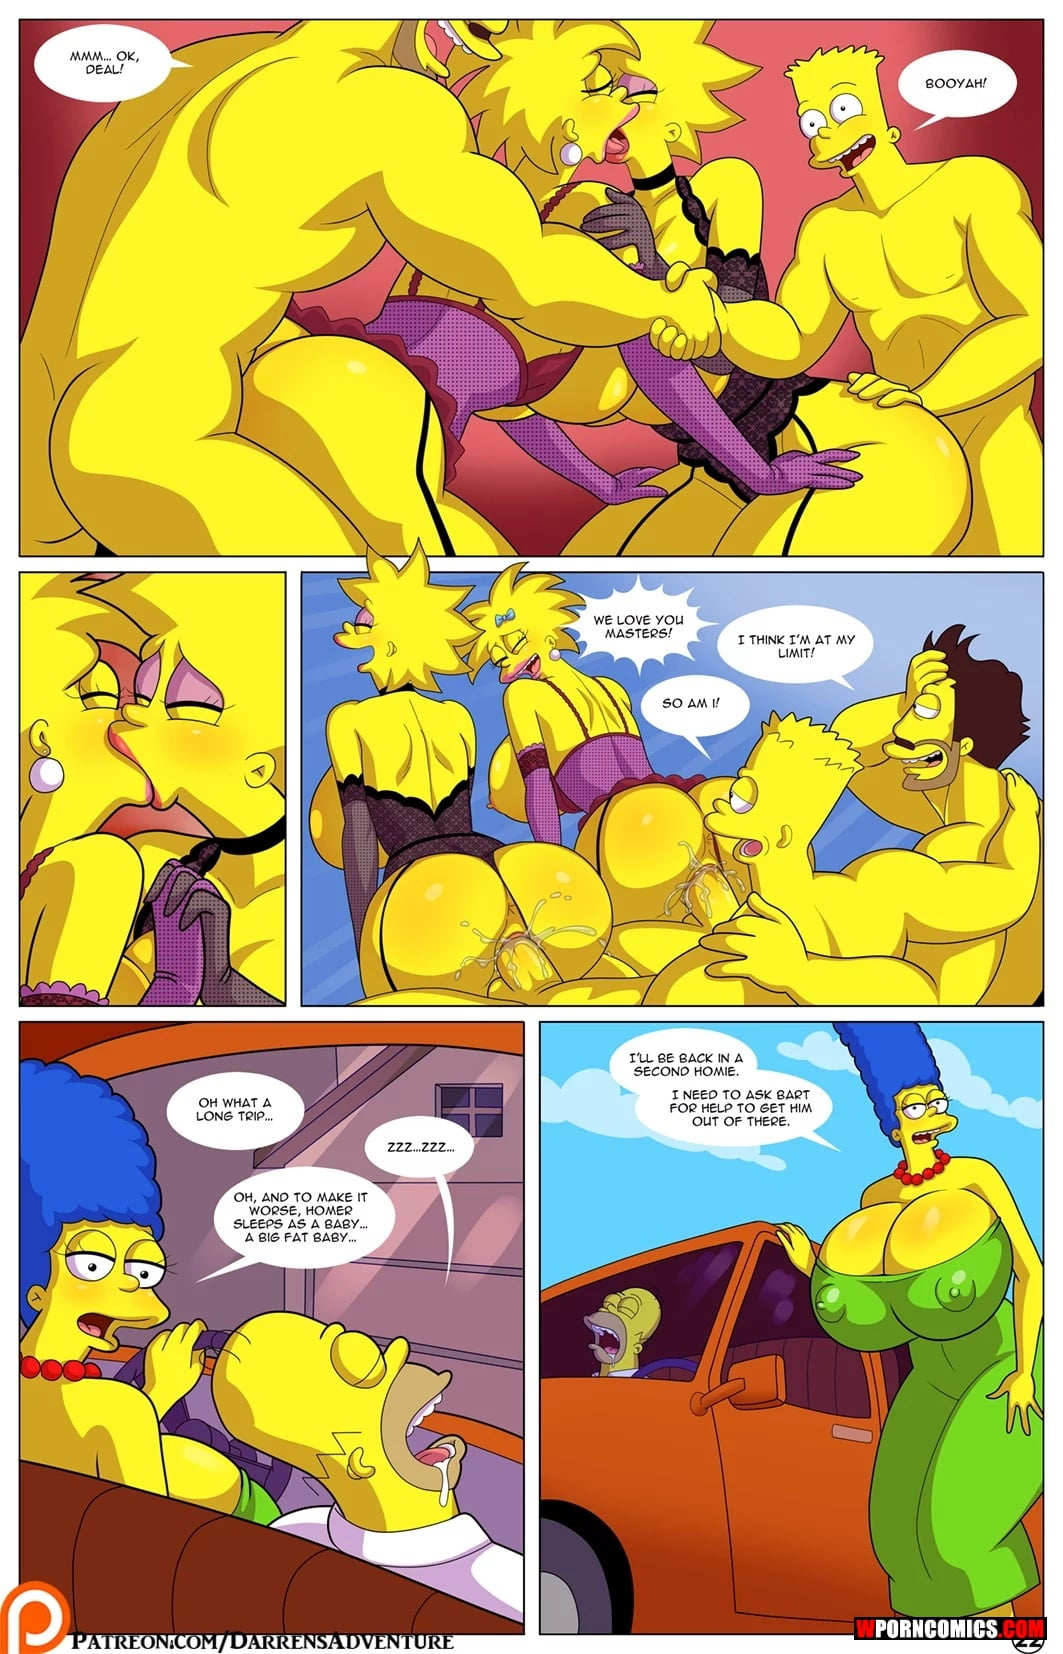 porn-comic-darrens-adventure-part-5-simpsons-2020-03-23/porn-comic-darrens-adventure-part-5-simpsons-2020-03-23-39017.jpg